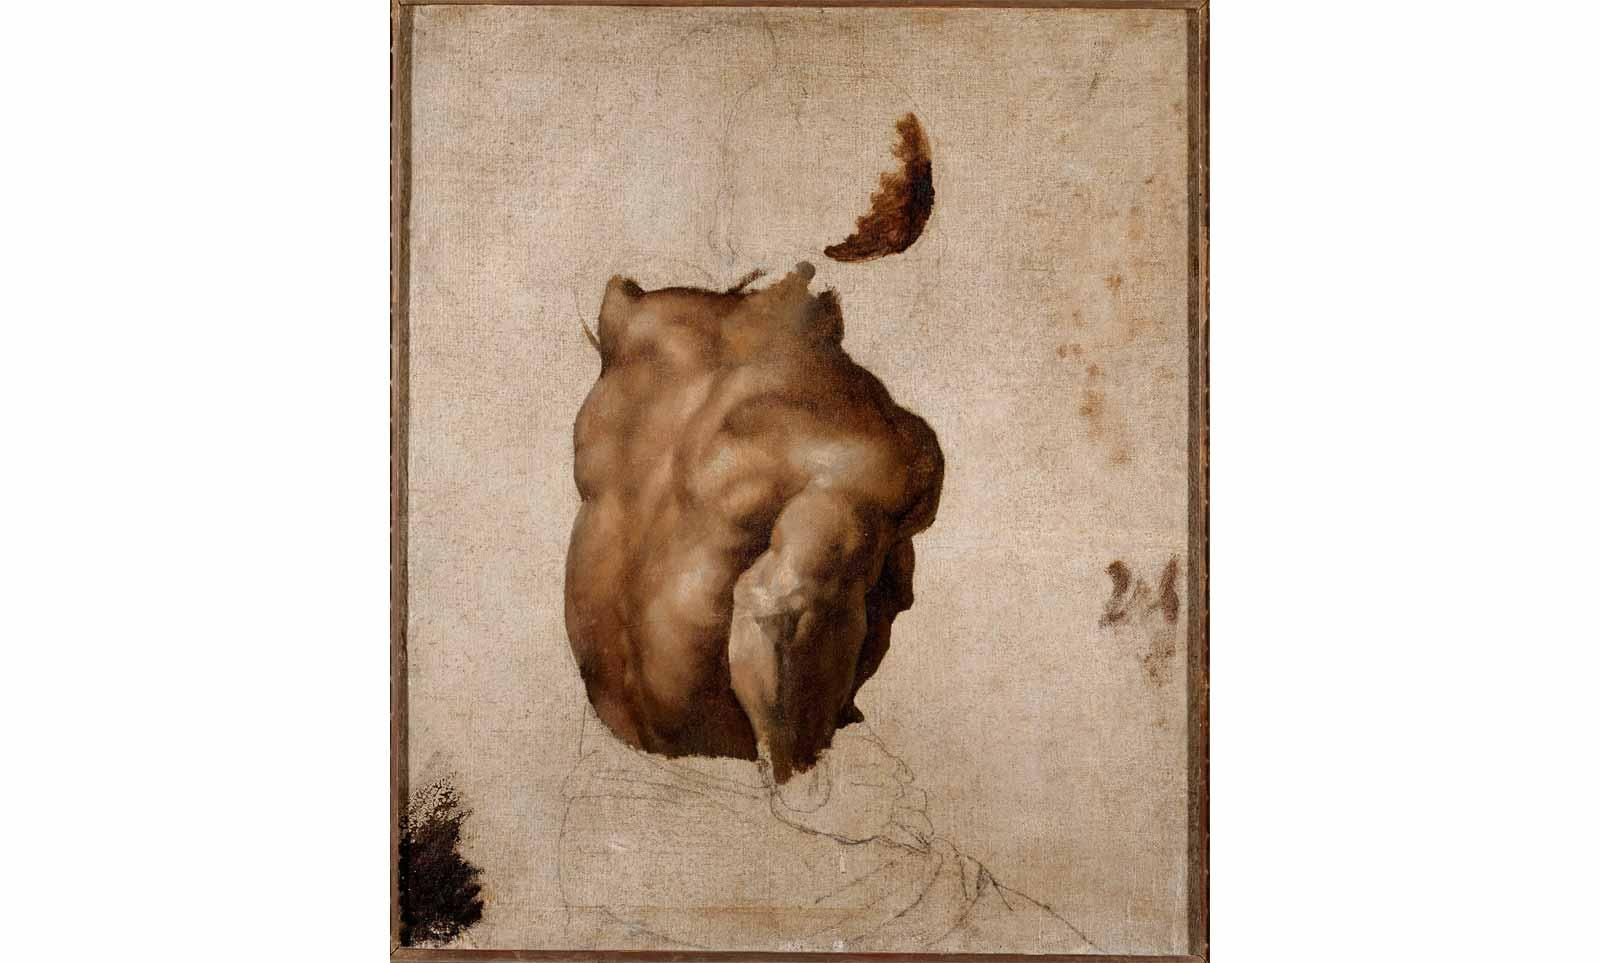 "Théodore Géricault (1791-1824), Back study (after the model Joseph) for ""The Raft of the Medusa"", circa 1818-1819"